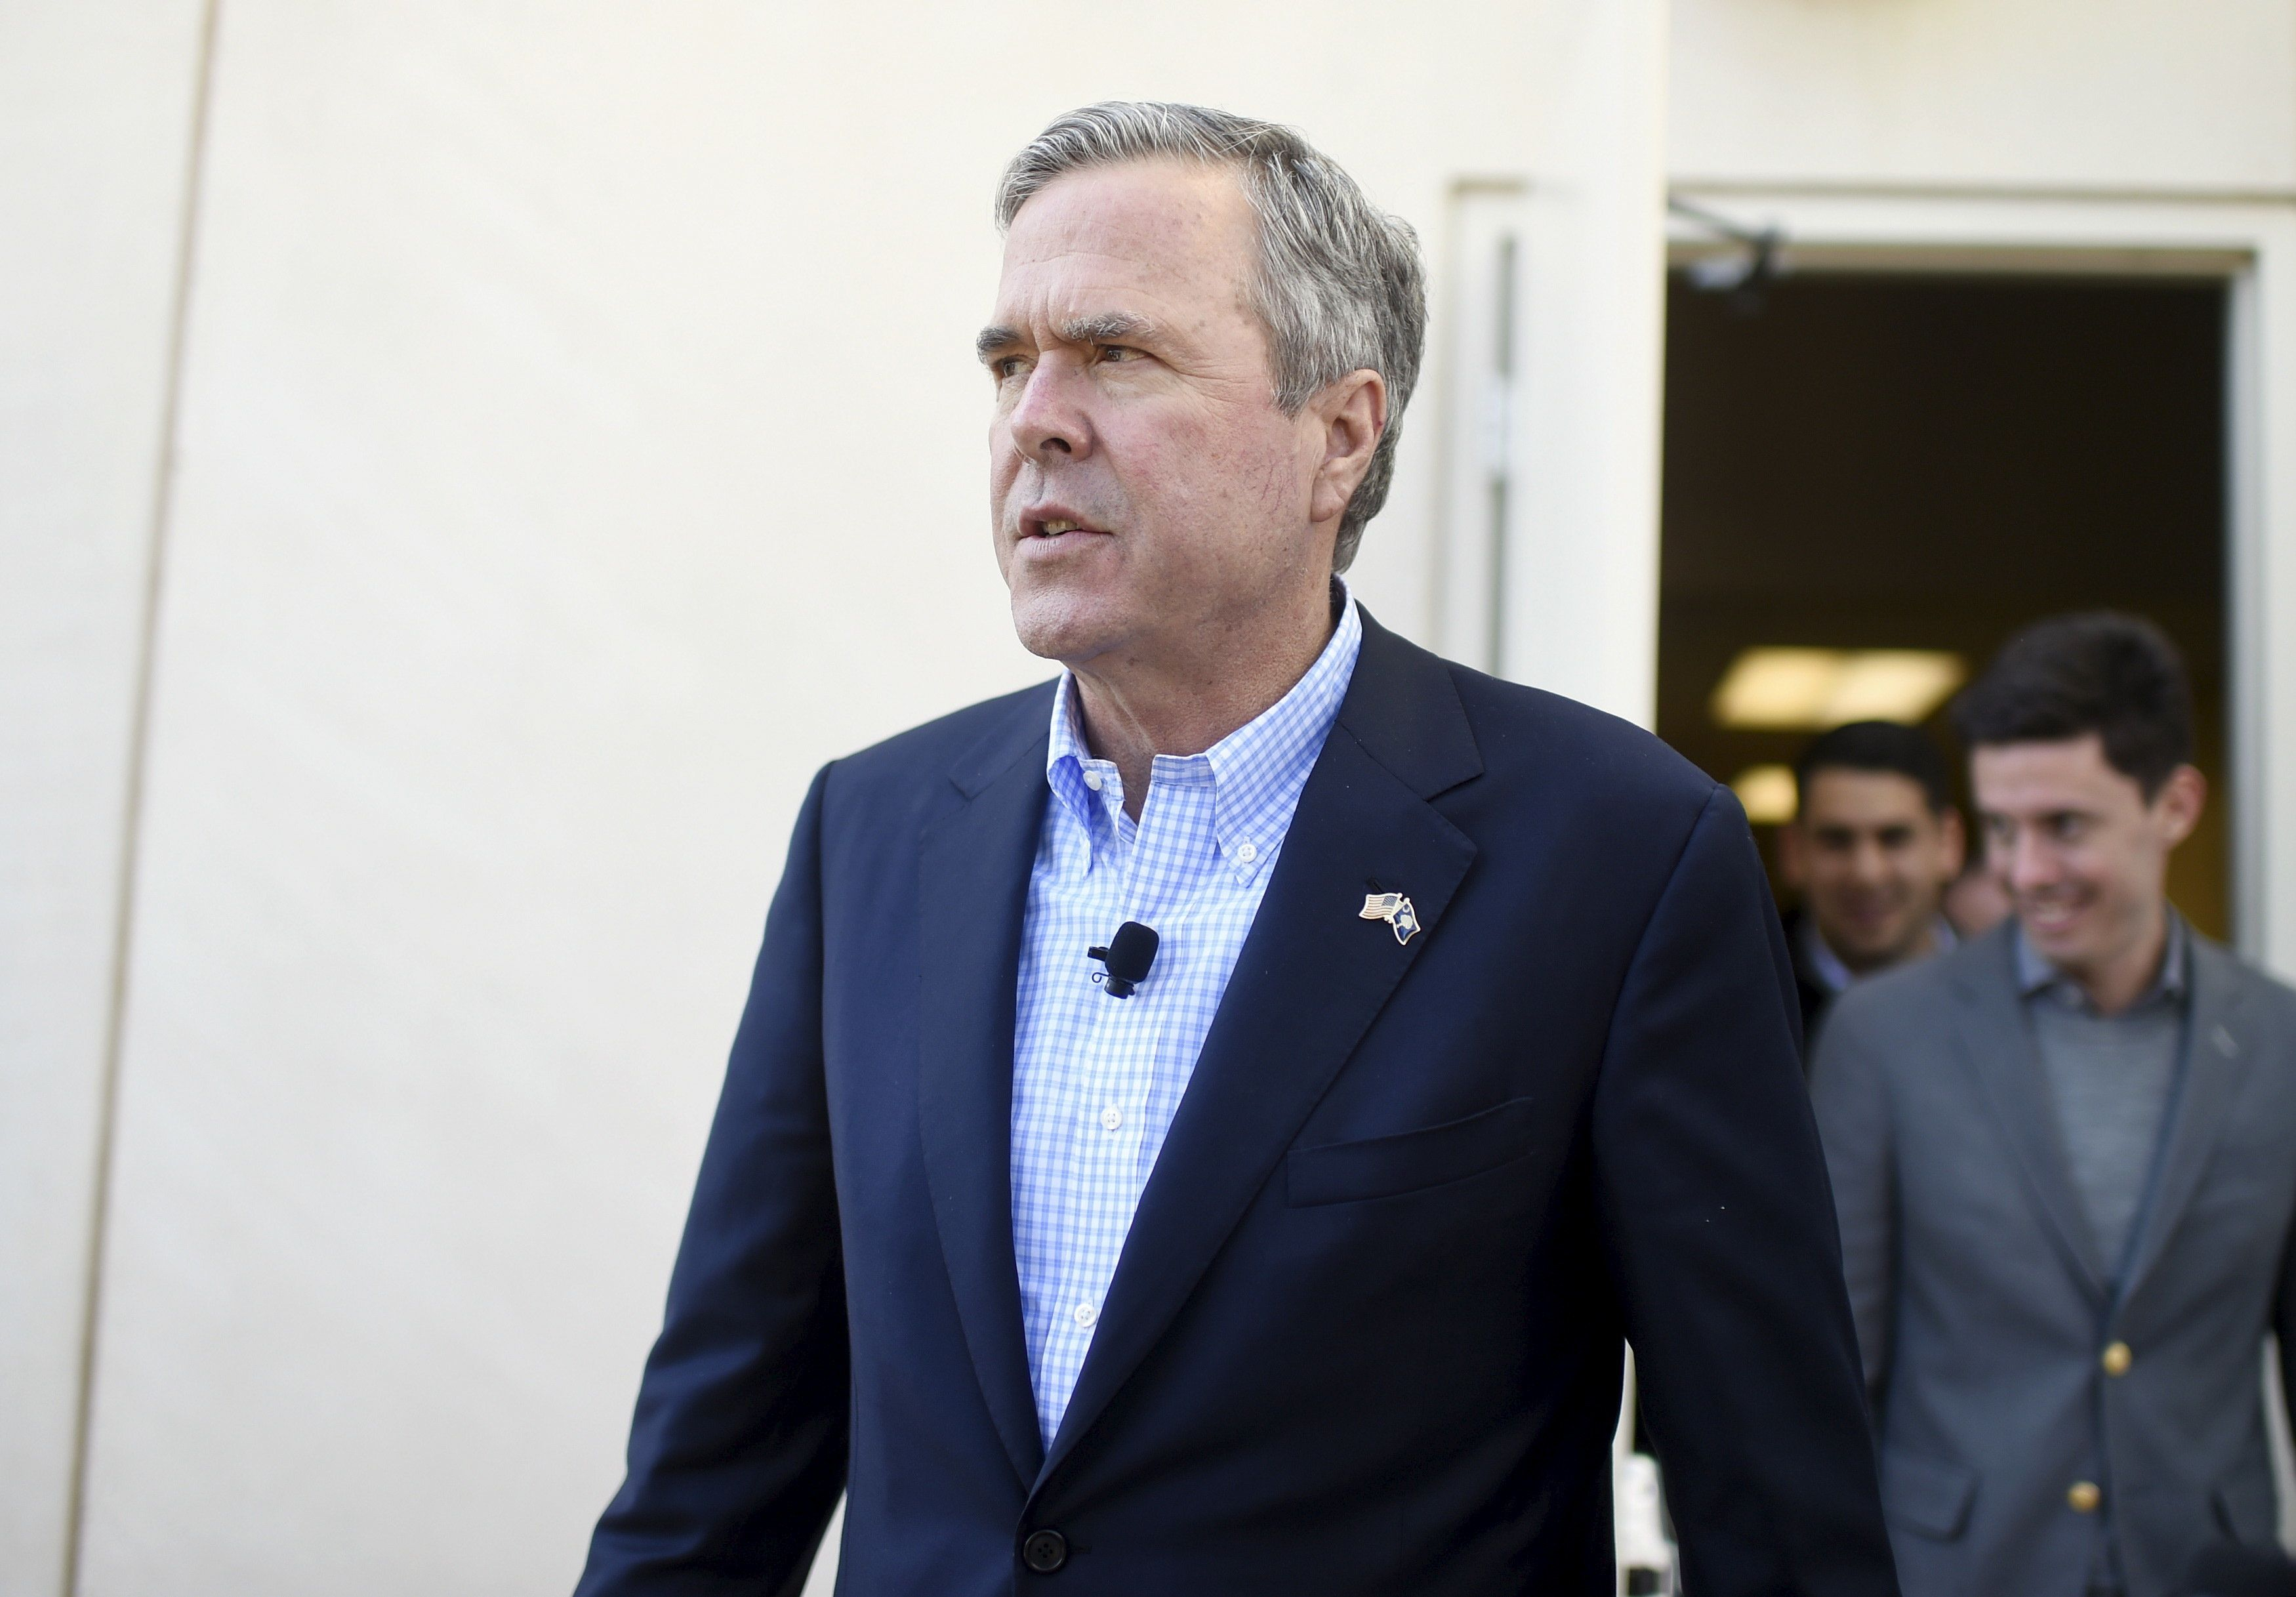 Republican U.S. presidential candidate Jeb Bush walks to his bus after speaking at a campaign event in Greenville, South Carolina February 19, 2016.   REUTERS/Rainier Ehrhardt